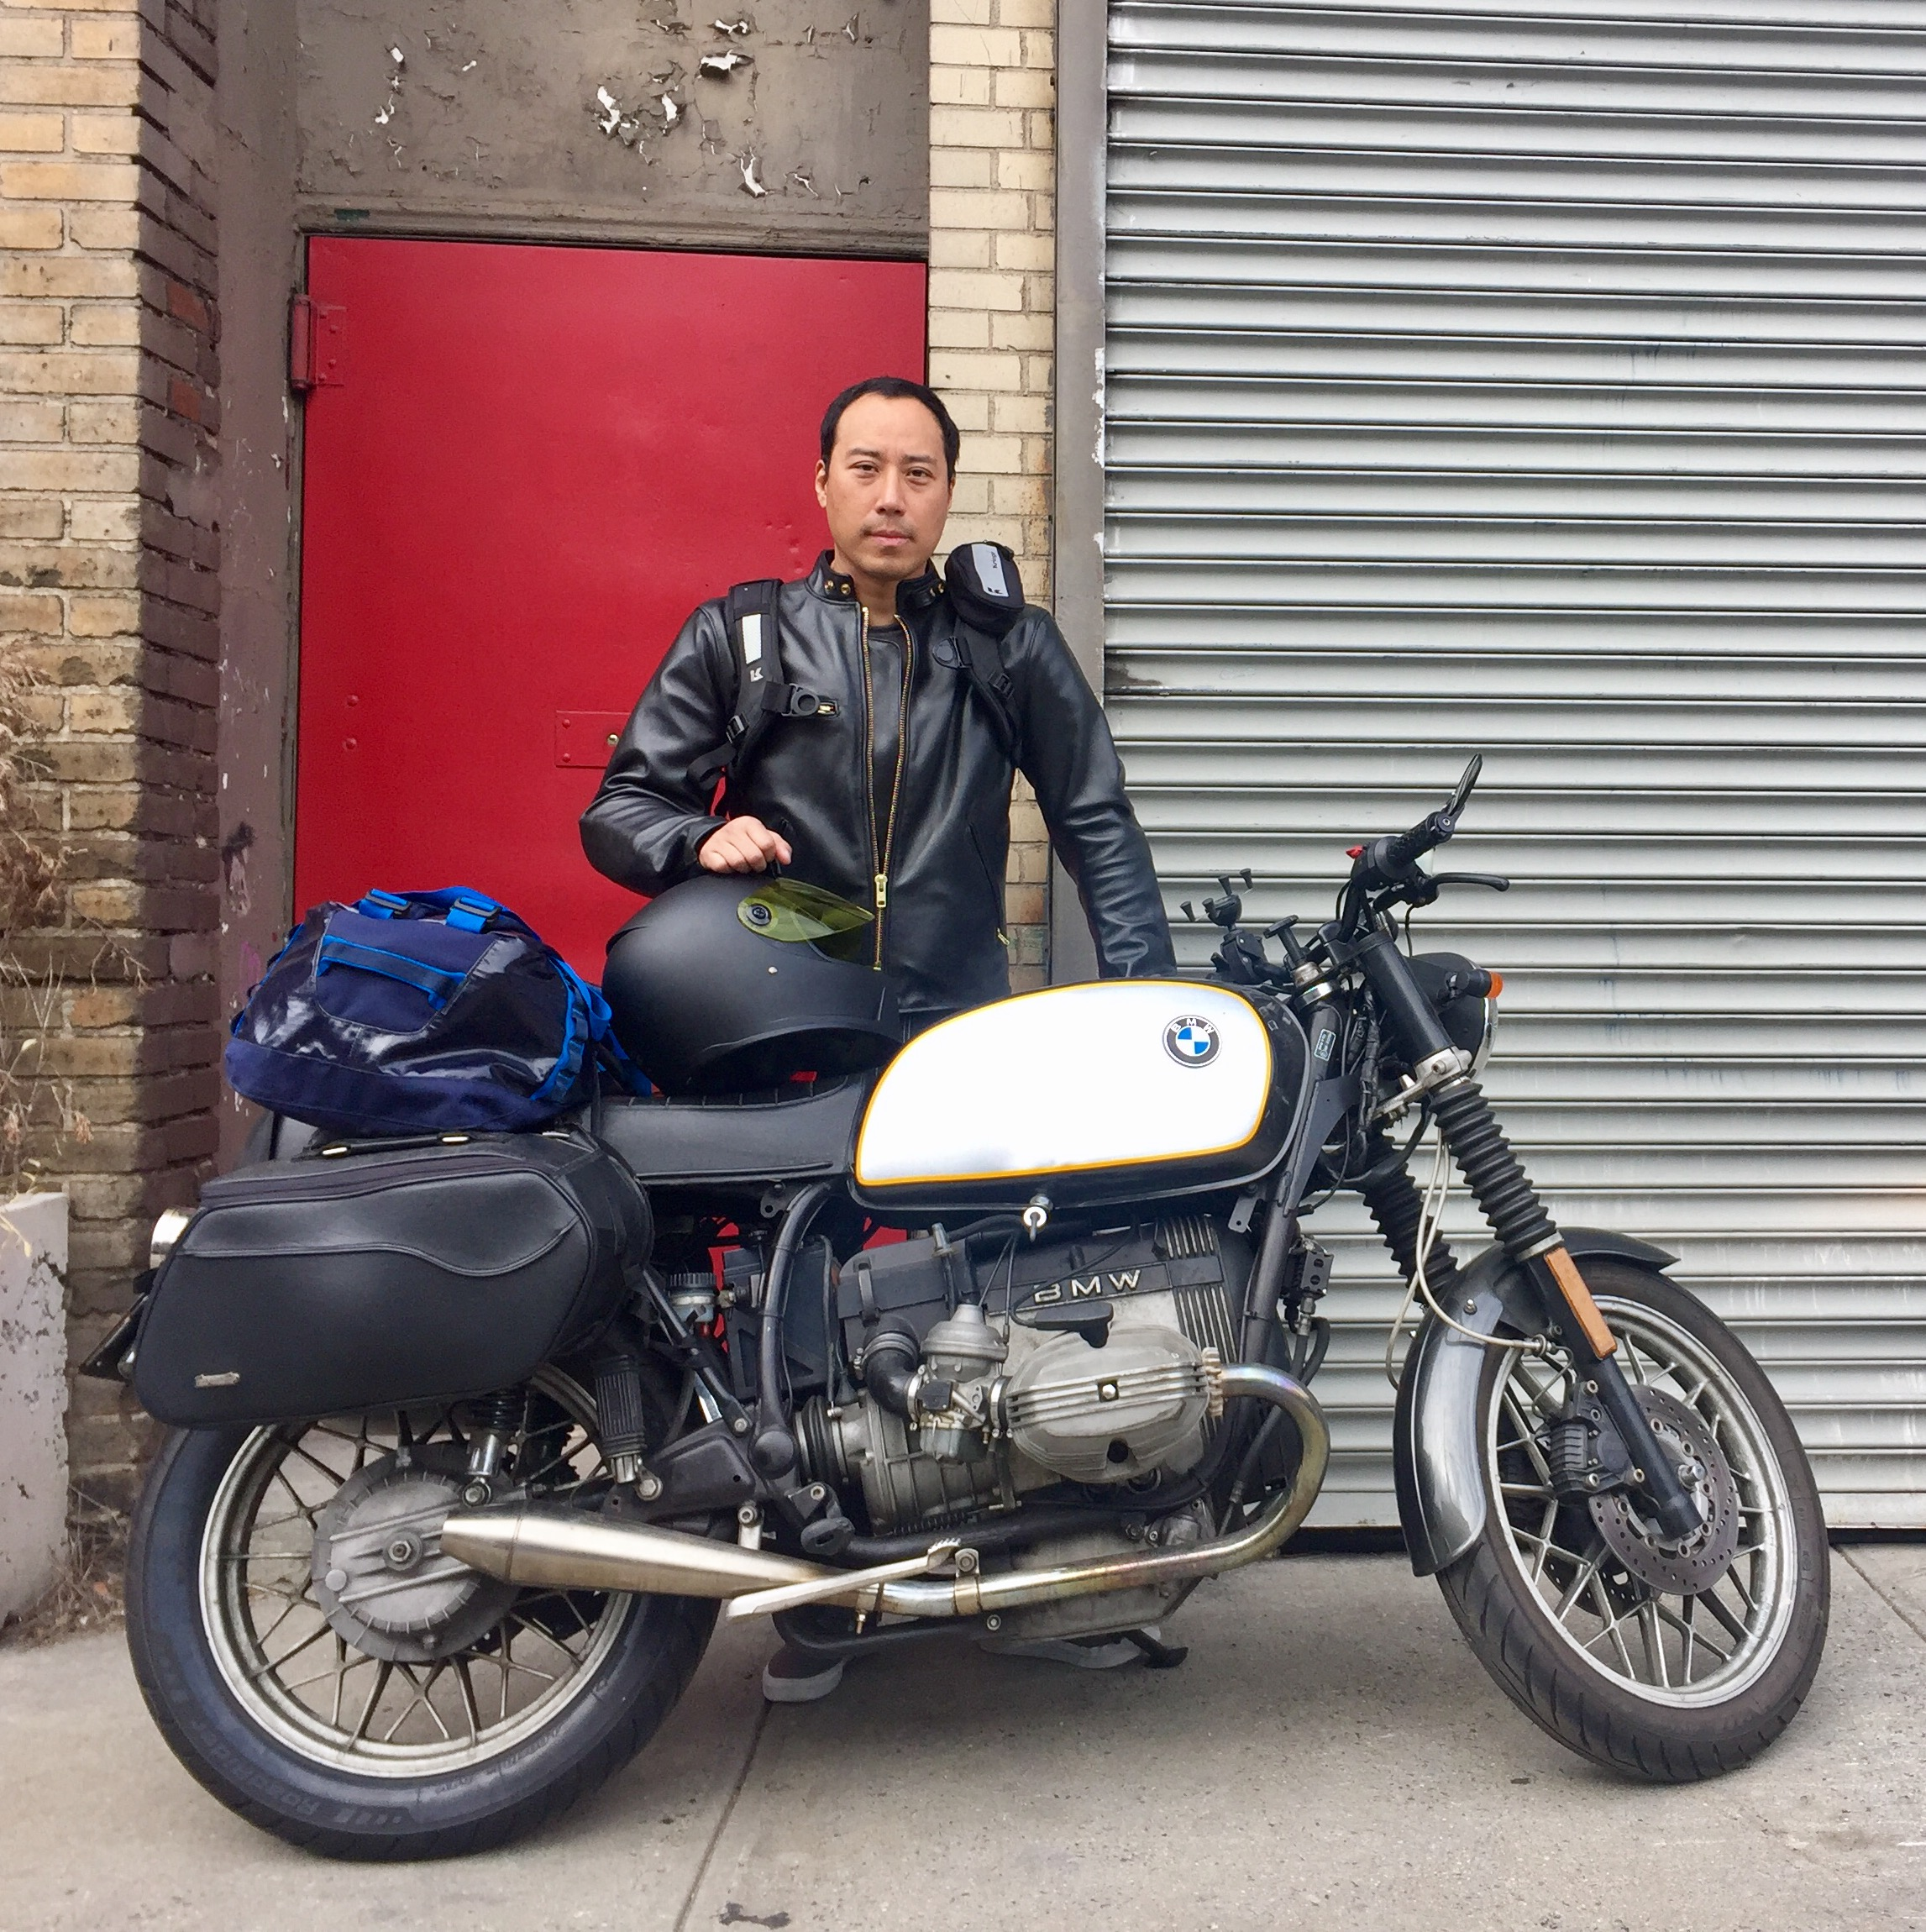 V7 The Vanson X Union Garage Nyc Armored Leather Motorcycle Jacket The Fedora Lounge